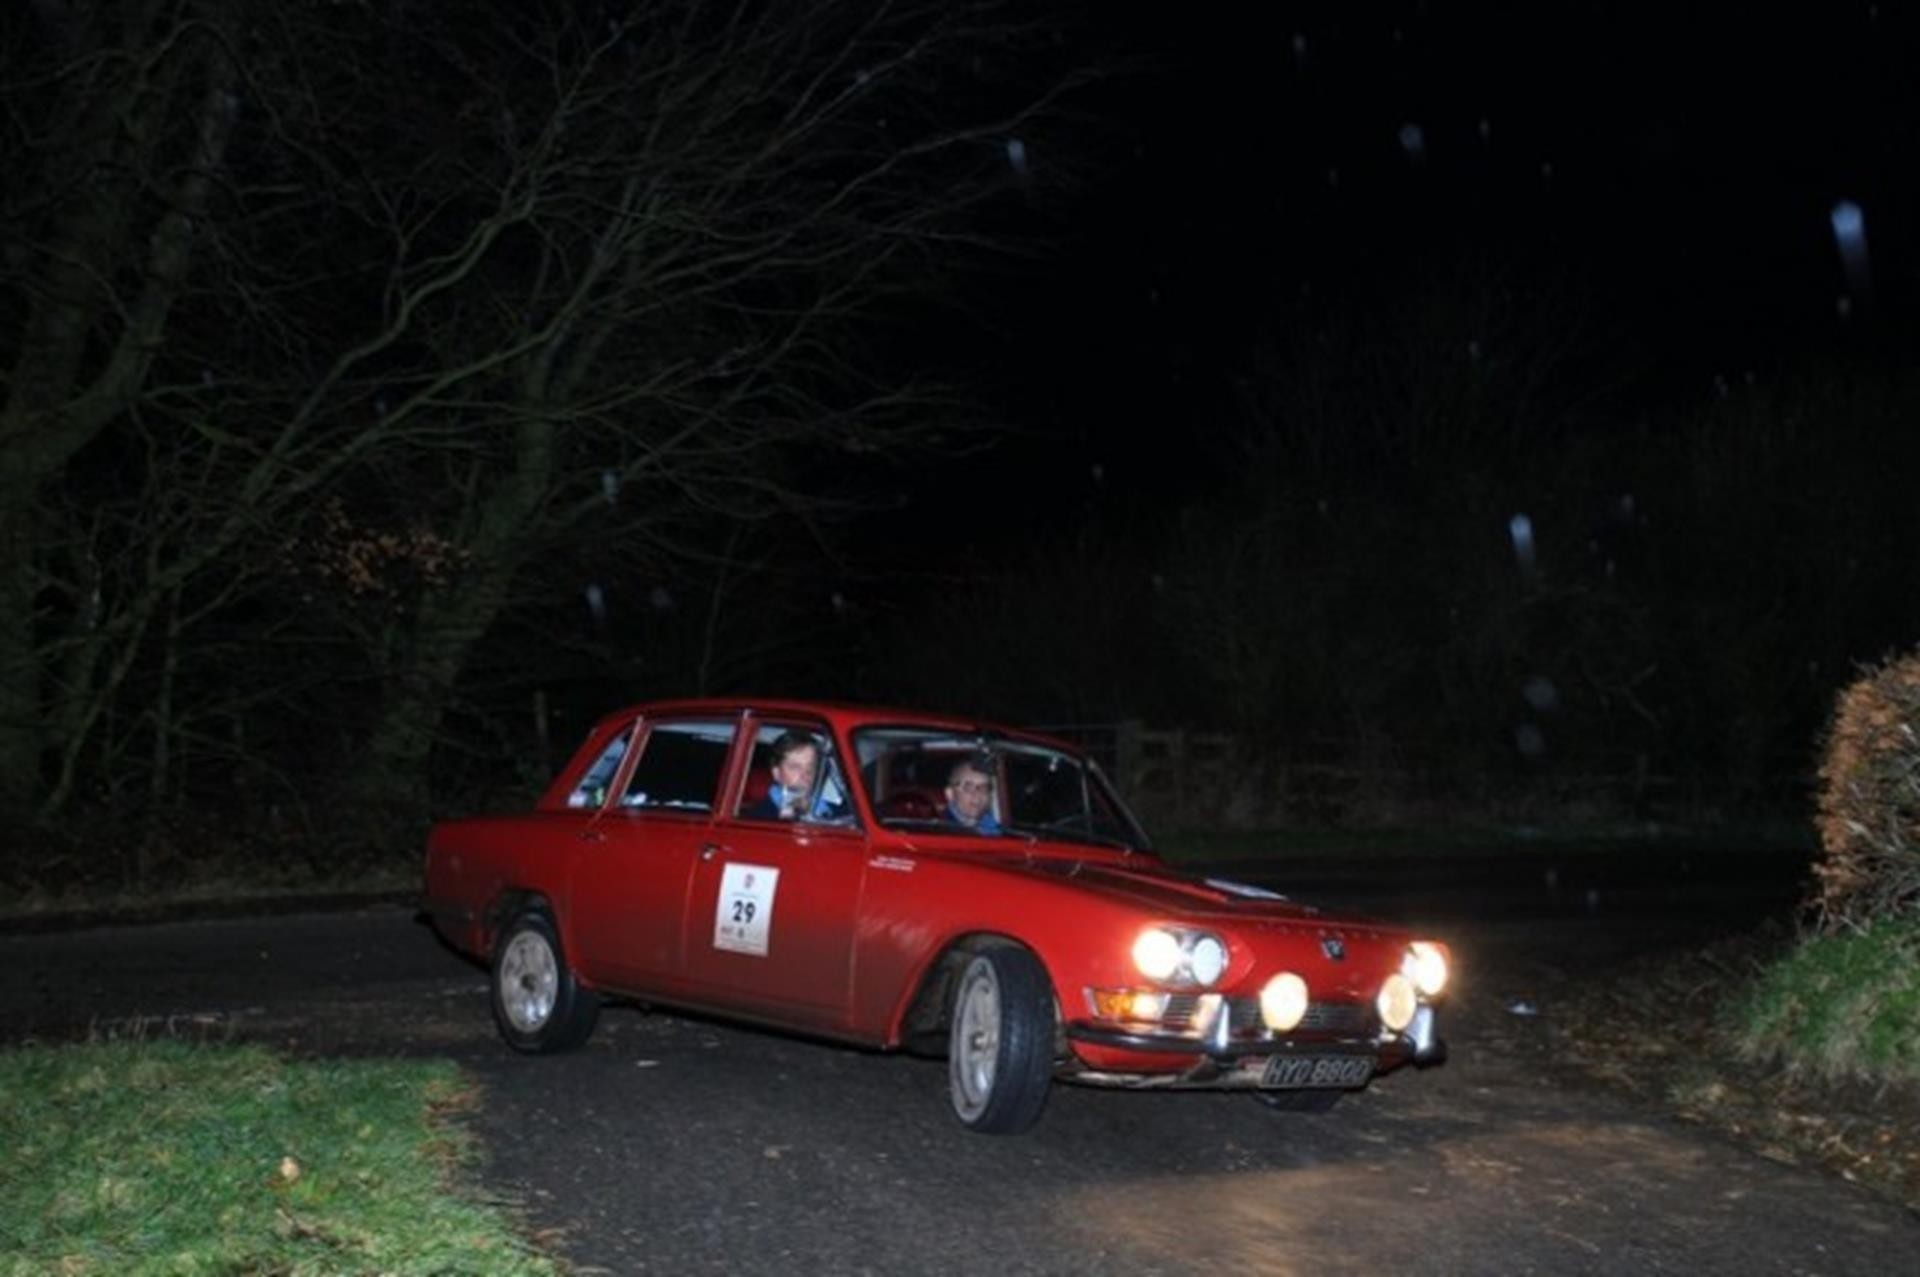 Second overall, car 29, a 1966 Triumph 2000